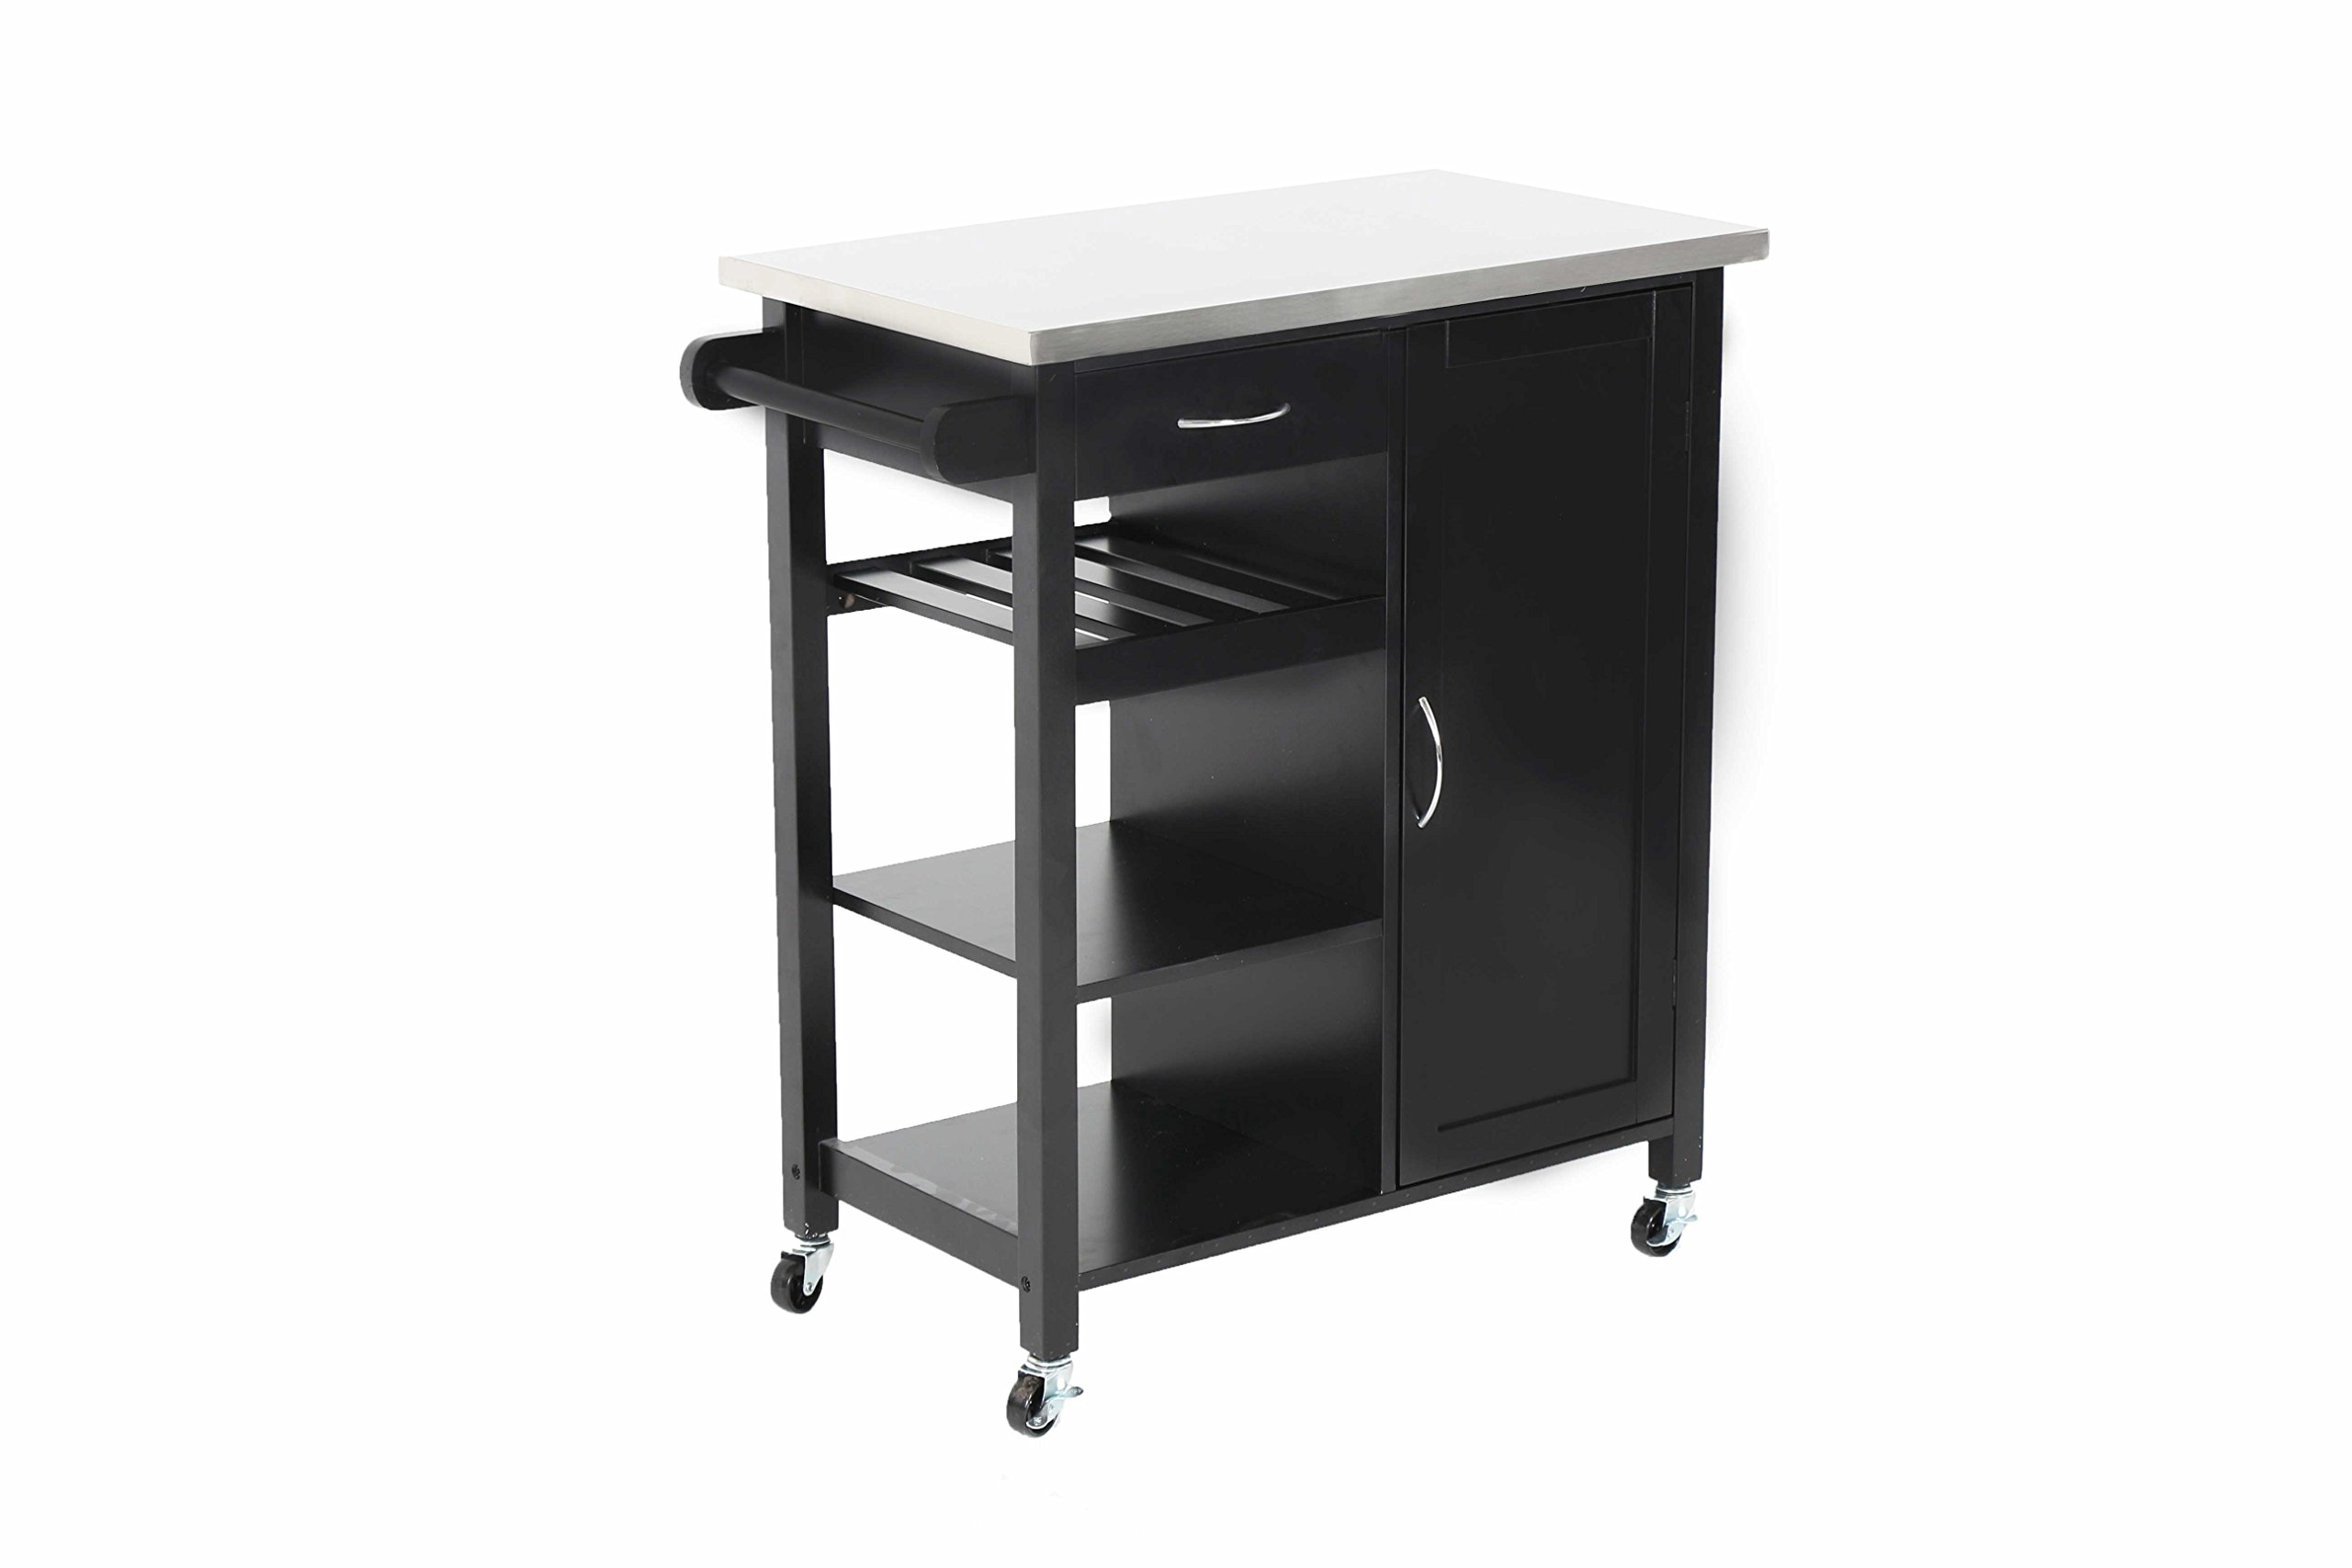 "Oliver and Smith - Nashville Collection - Mobile Kitchen Island Cart on Wheels - Black - Stainless Steel Top - 32"" W x 17"" L x 36"" H 102118-01blk"